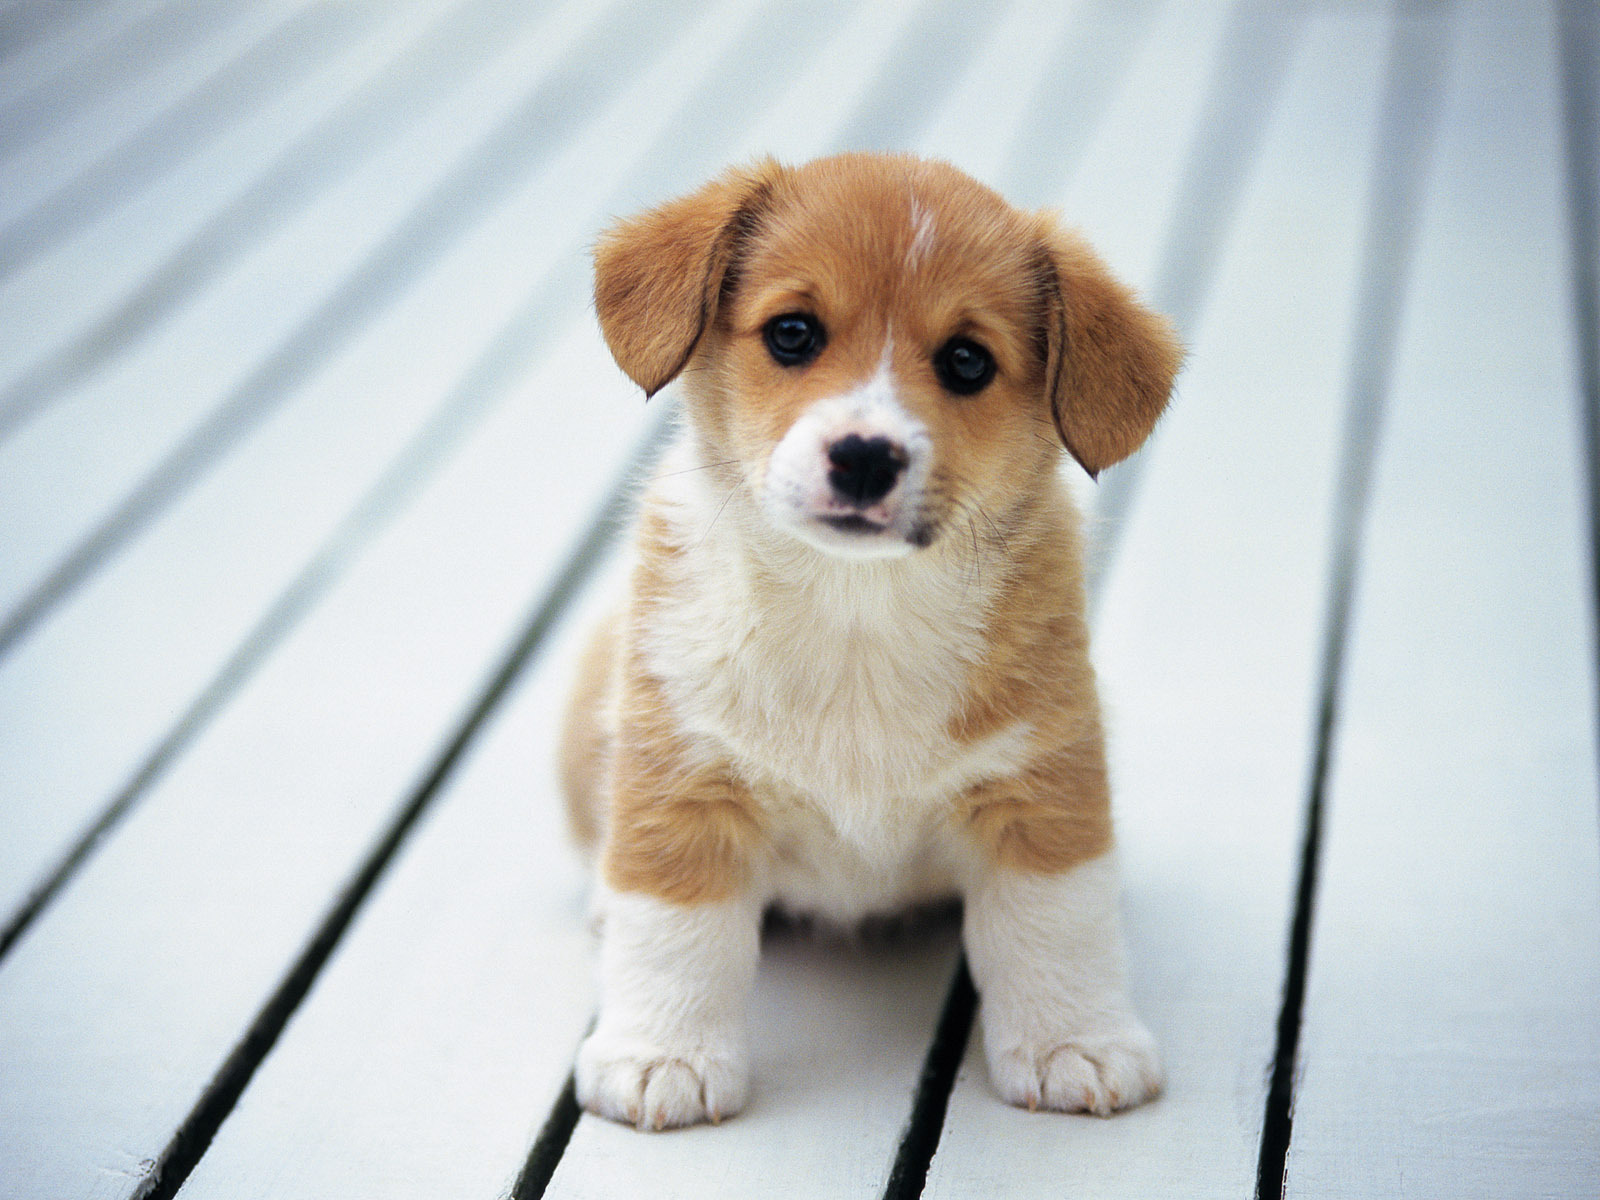 Online Wallpapers Shop Cute Puppy Pictures Puppy Wallpaper Images 1600x1200